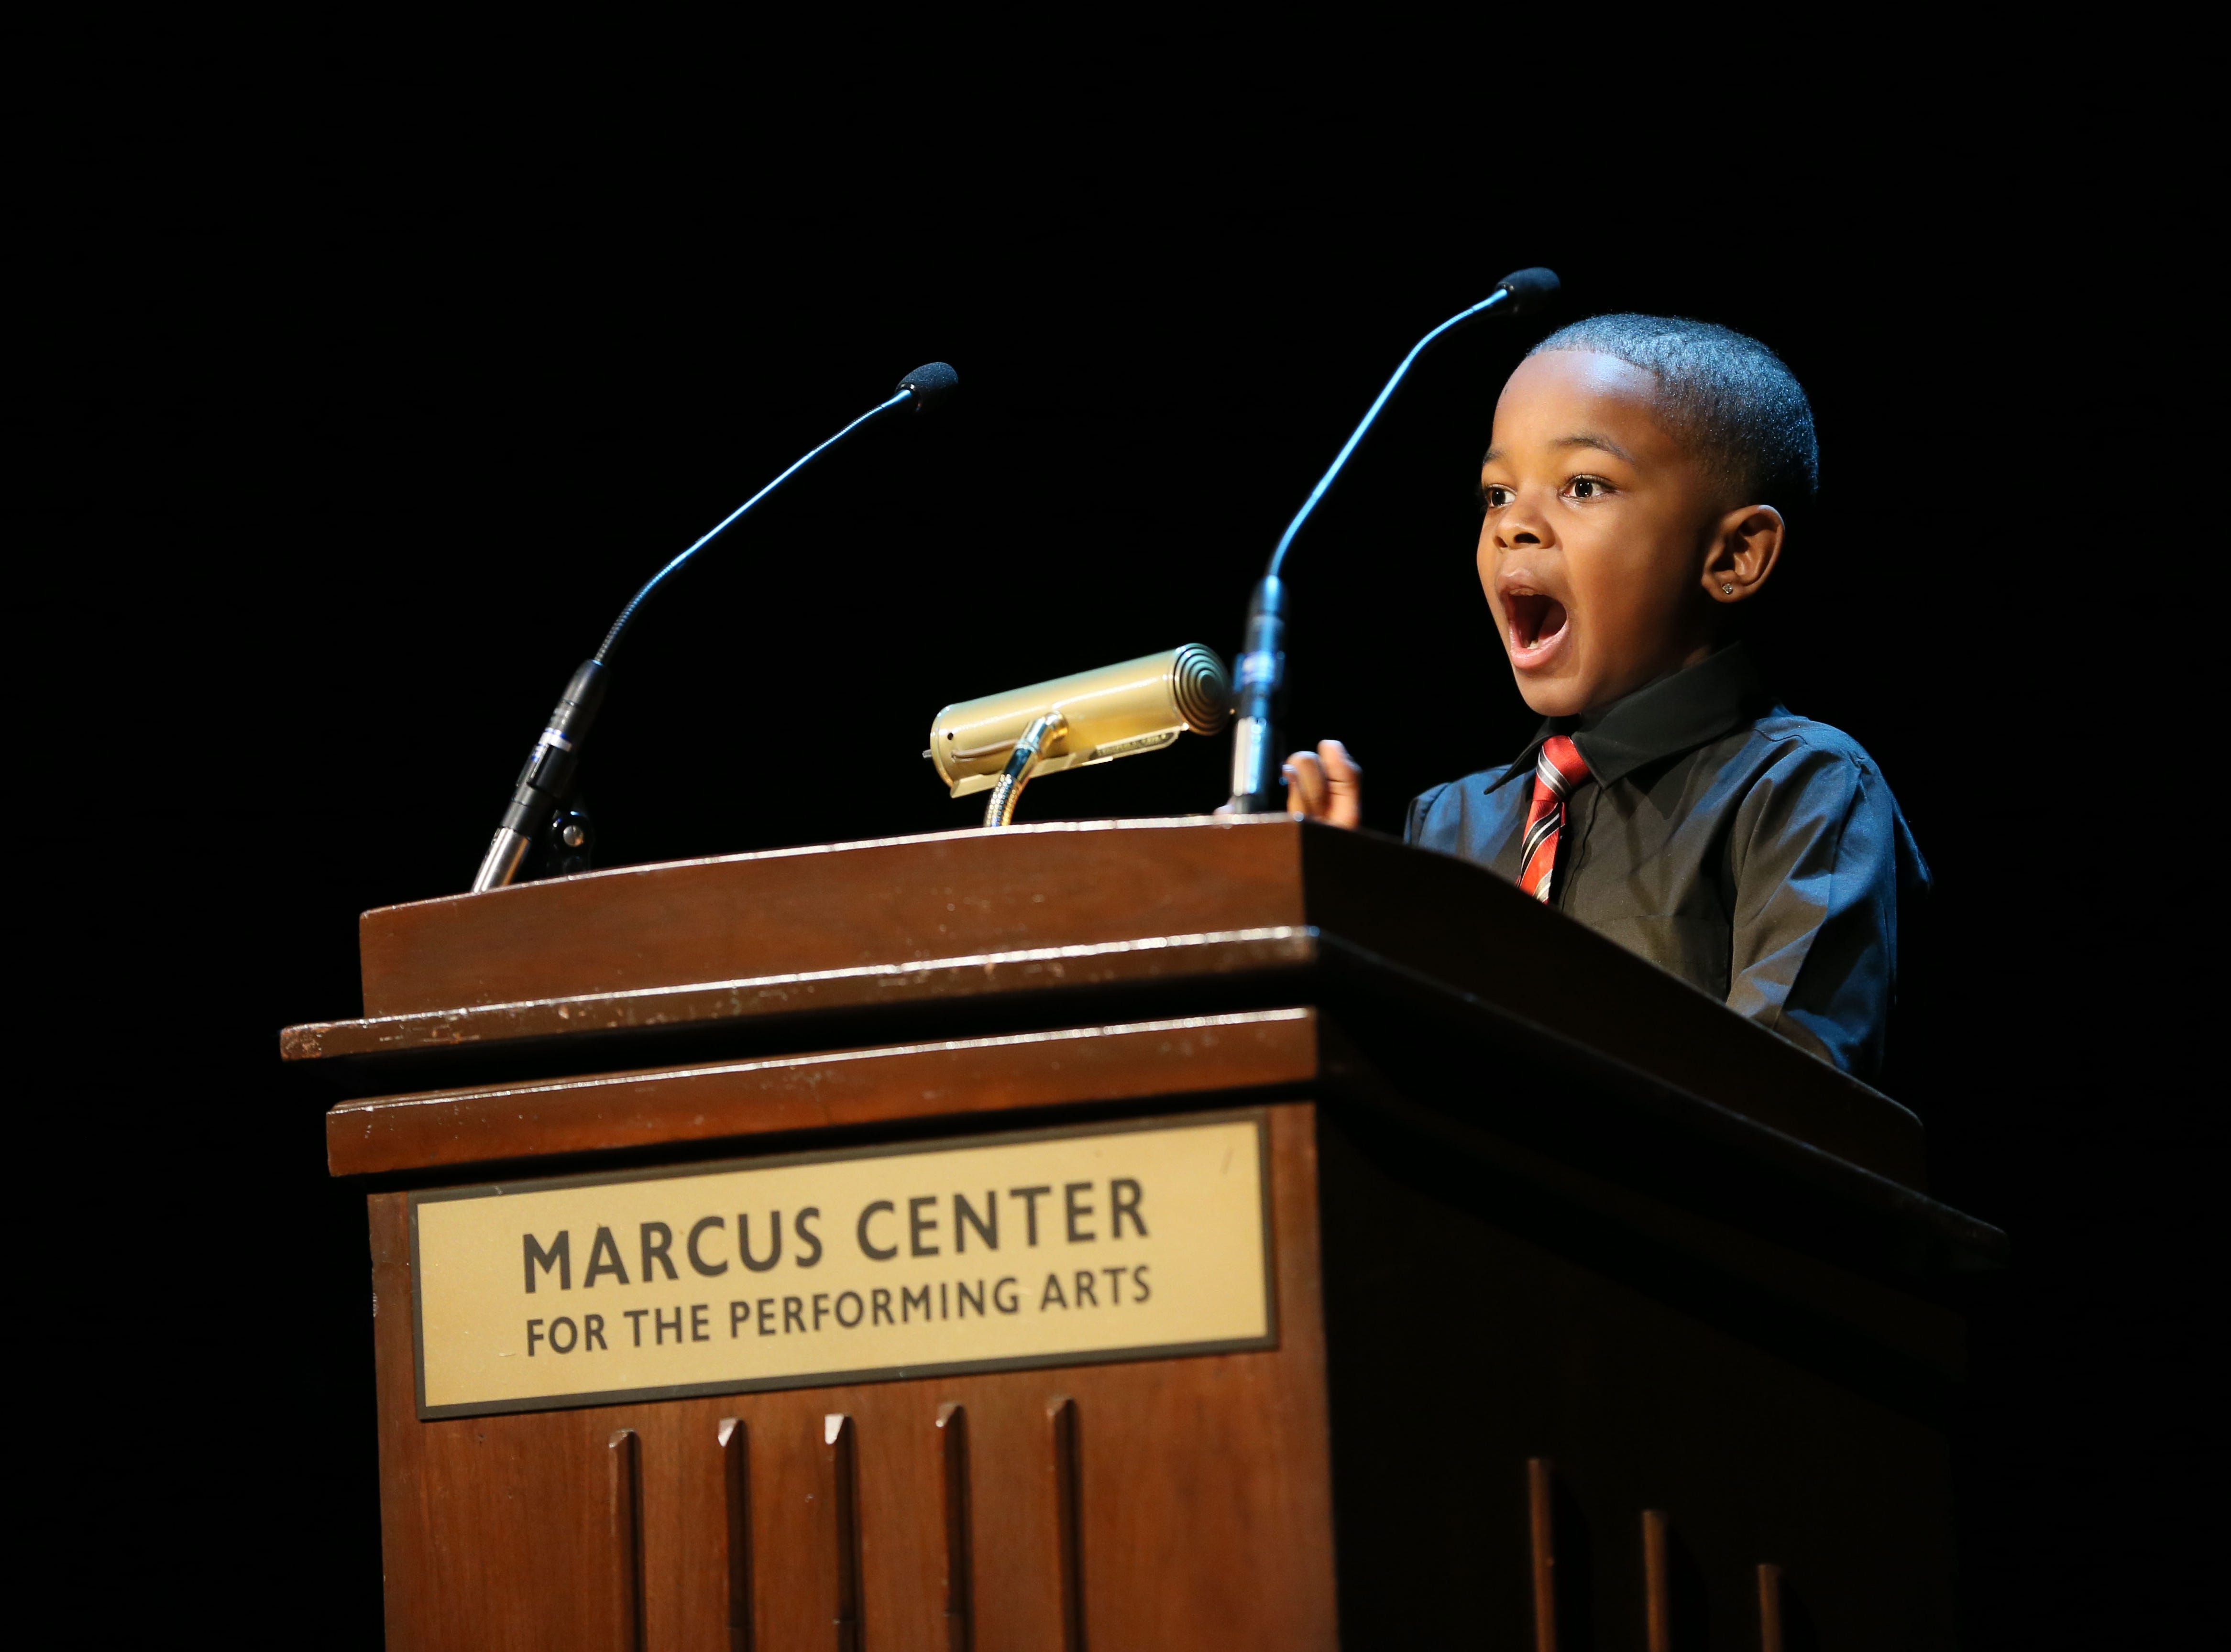 January 17, 2016 Photograph from the Dr. Martin Luther King, Jr. Birthday Celebration held at the Marcus Center for the Performing Arts in Milwaukee.   Jordan Cameron, a second grader from Hawthorne Elementary School as he gave the speech that made him one of the speech constest winners.  He received a standing ovation from the crowd after his rousing delivery. MICHAEL SEARS/MSEARS@JOURNALSENTINEL.COM